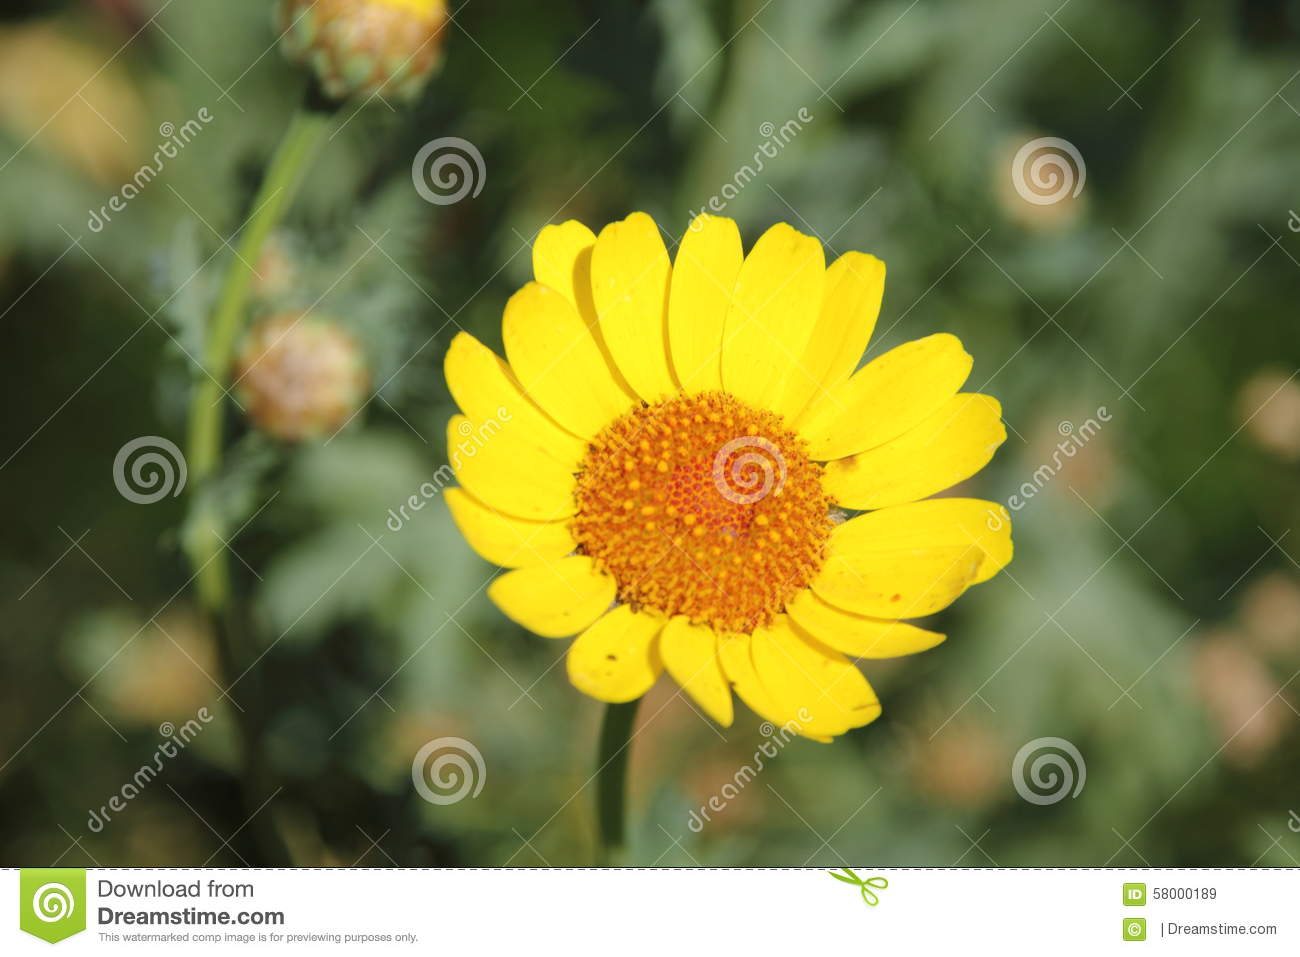 Yellow marguerite daisy flower stock image image of seeds yellow marguerite daisy flower izmirmasajfo